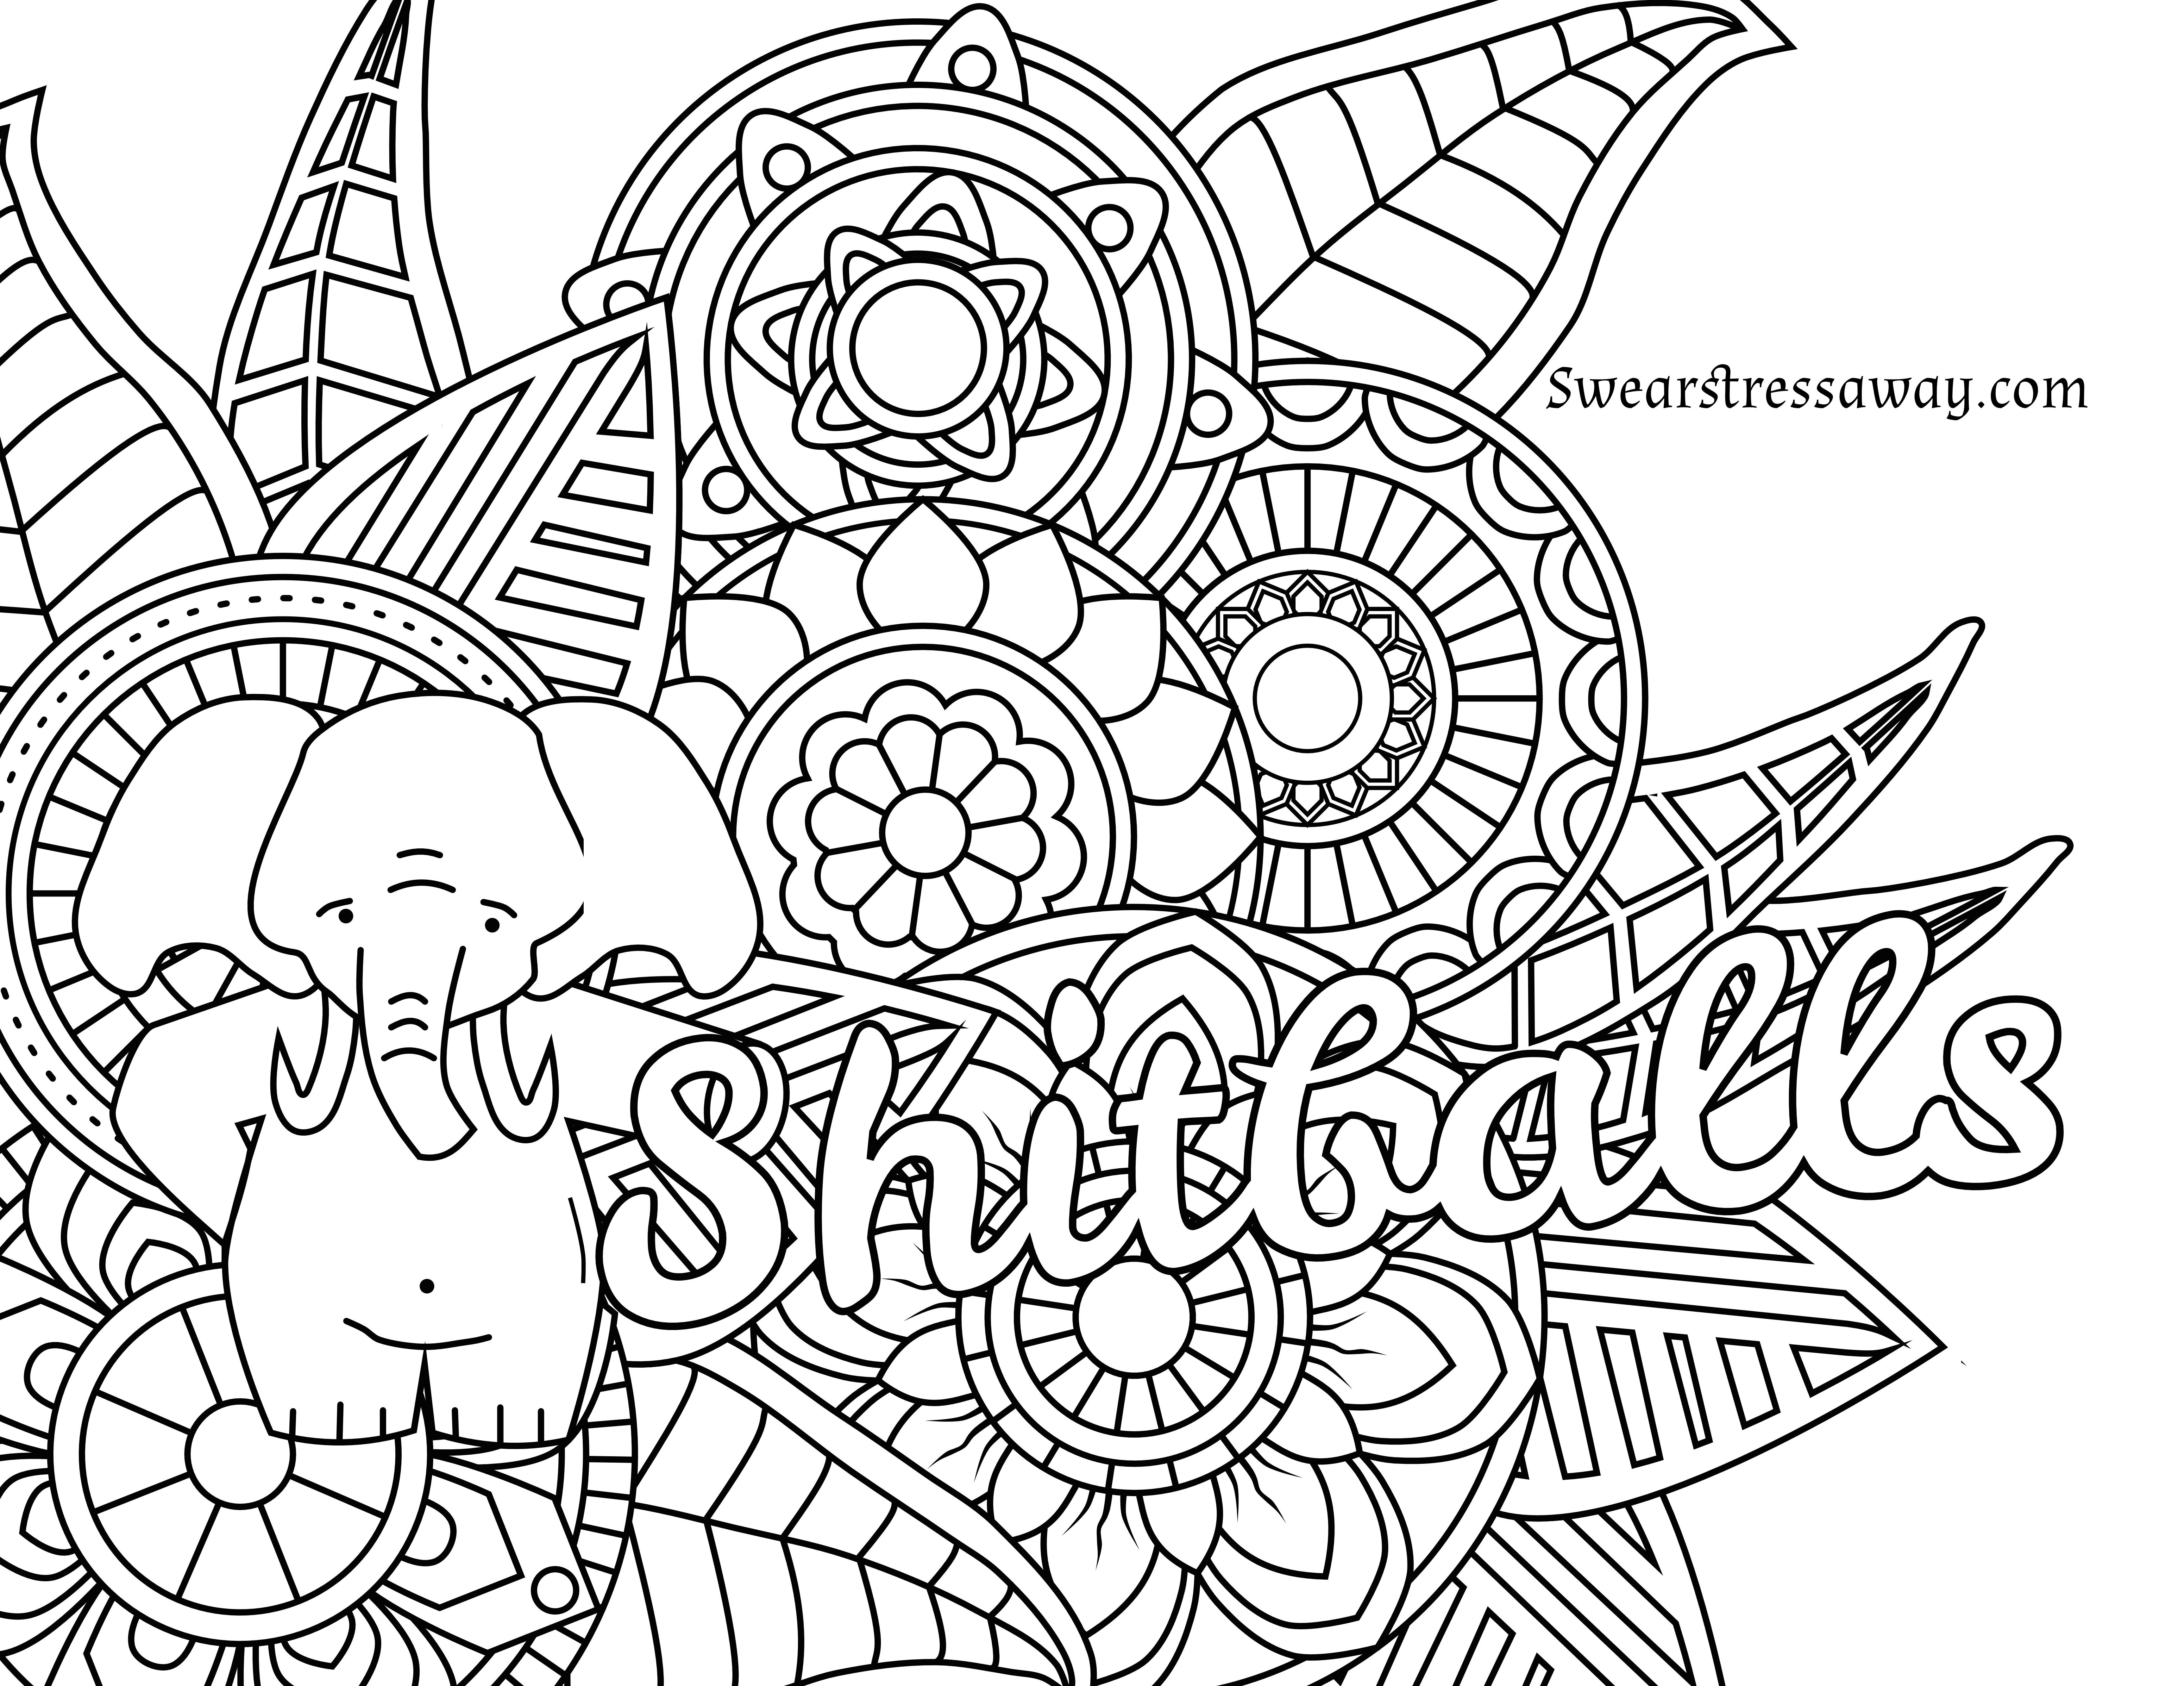 Free Printable Coloring Sheets Adults  Free Printable Adult Swear Word Coloring Pages Download